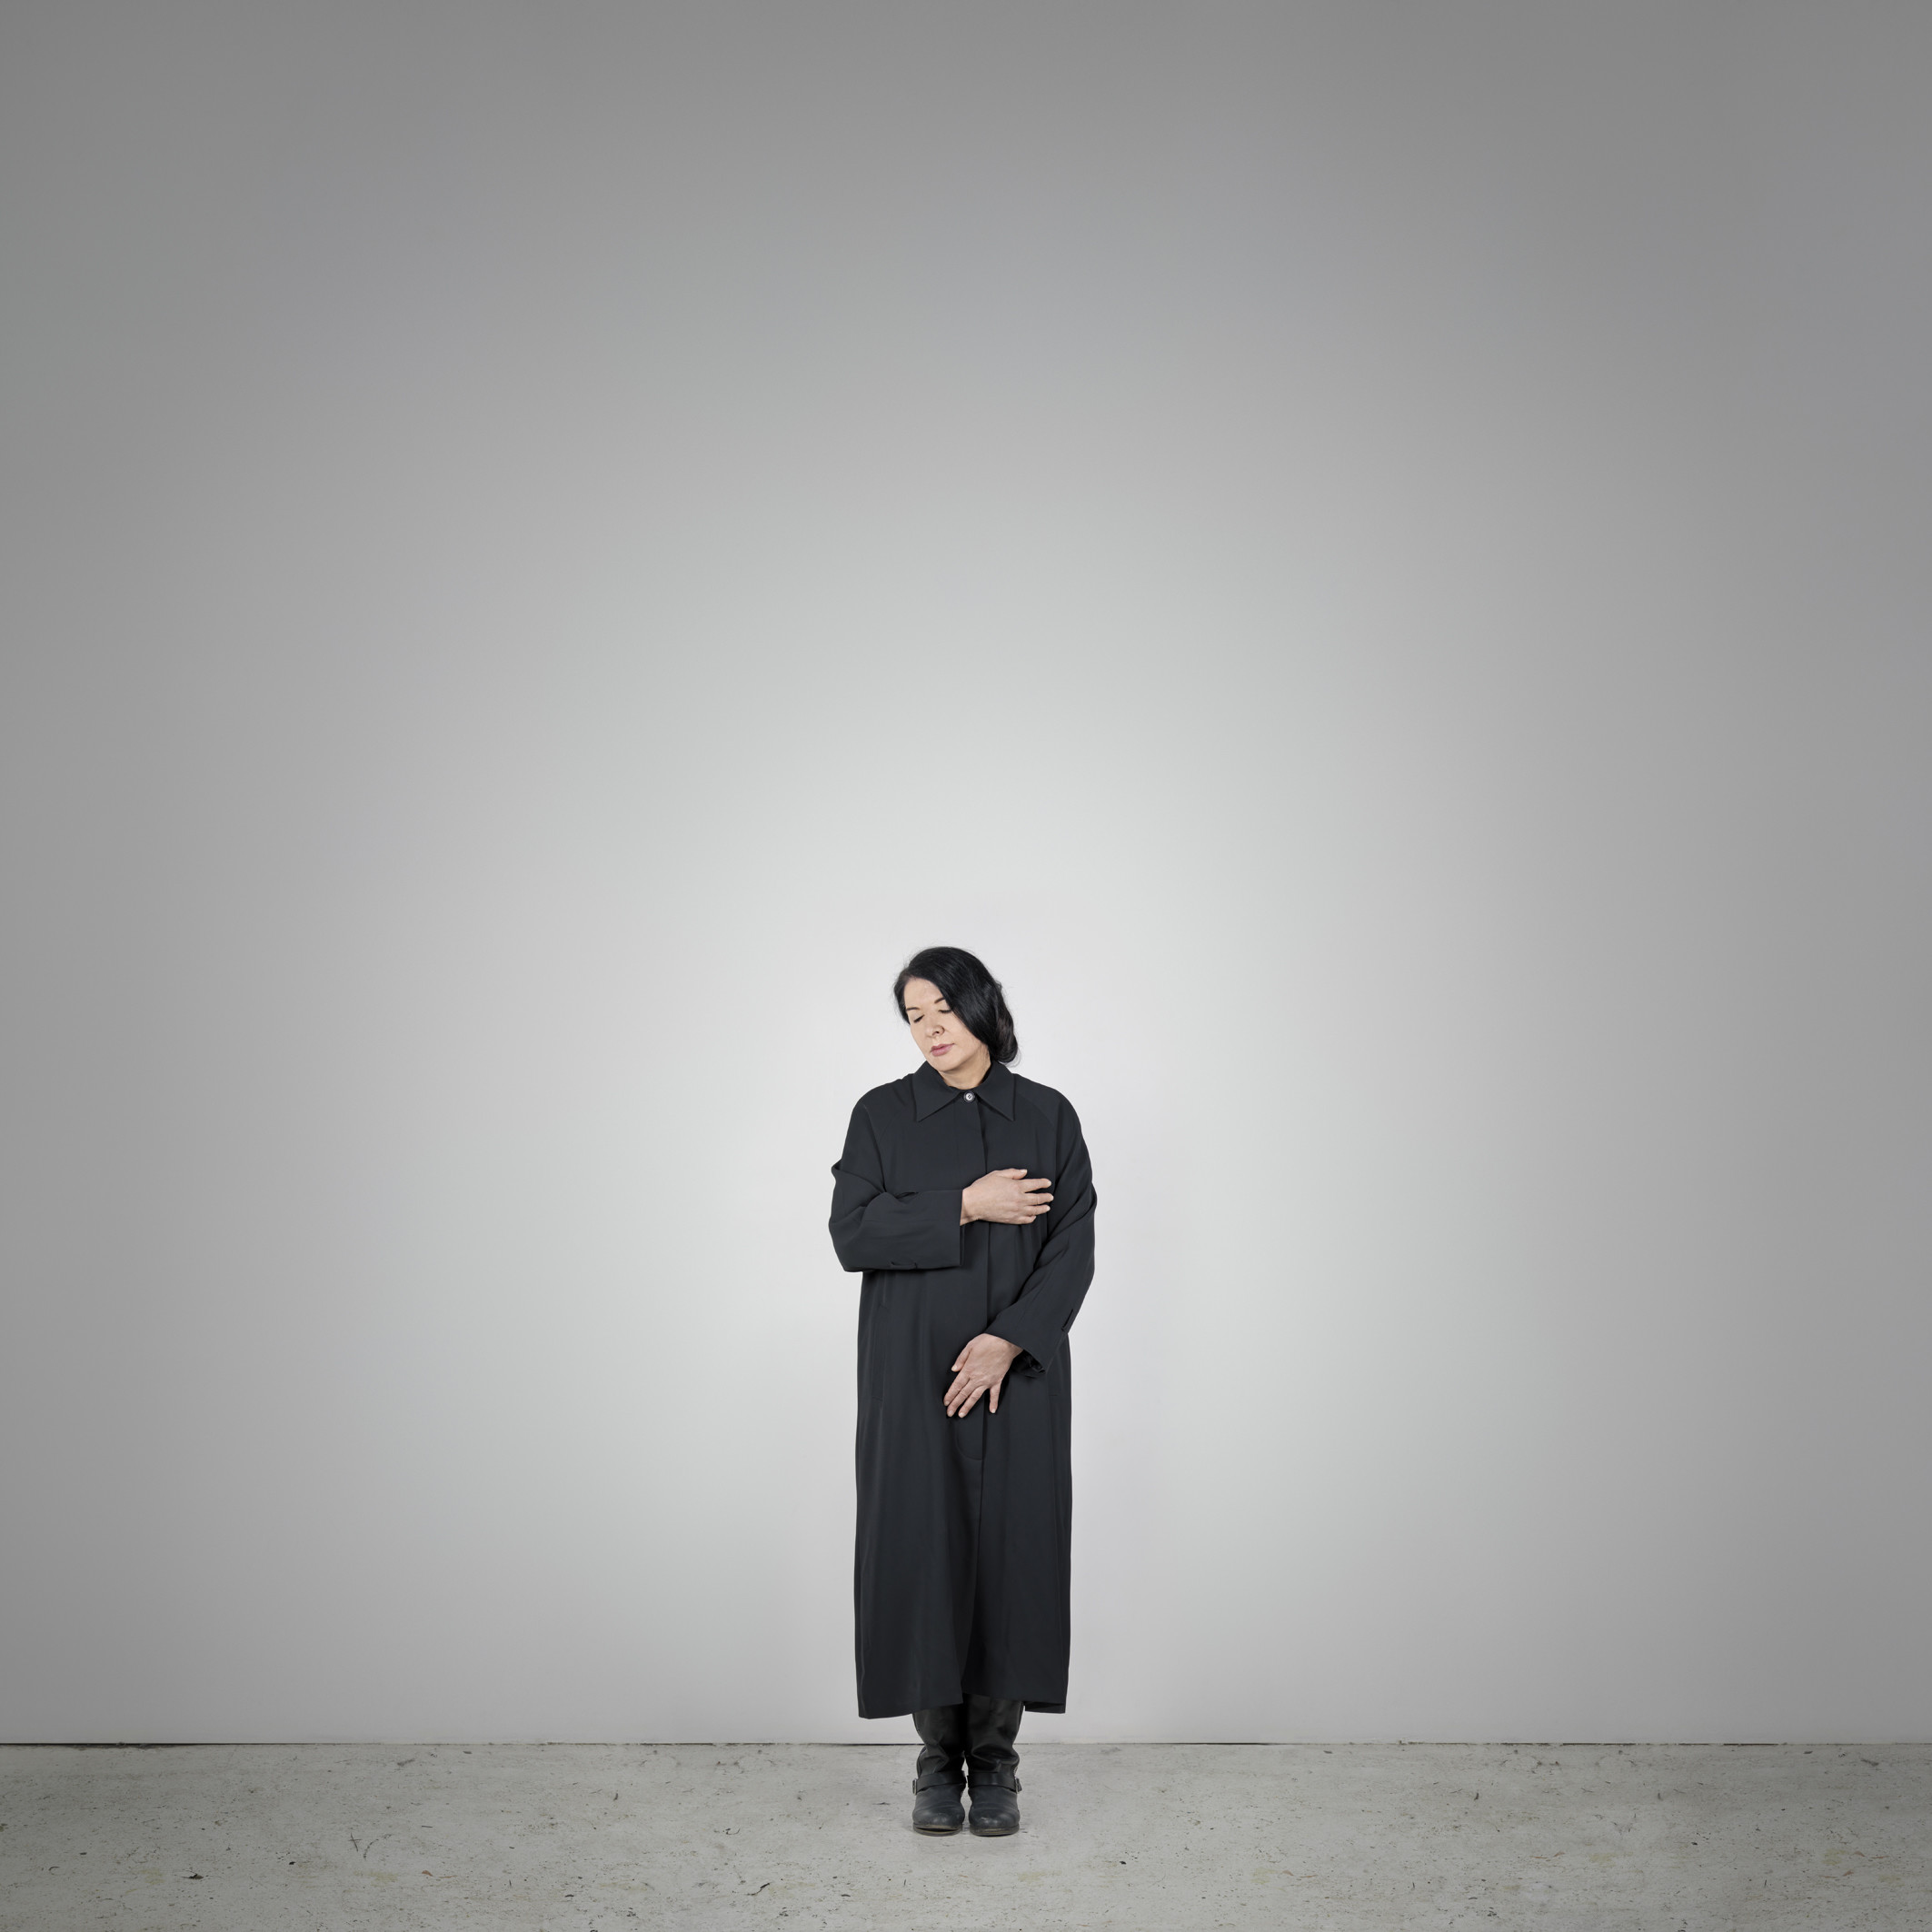 Marina Abramović, Measuring Body Heat, from the series, With Eyes Closed I See Happiness, 2012